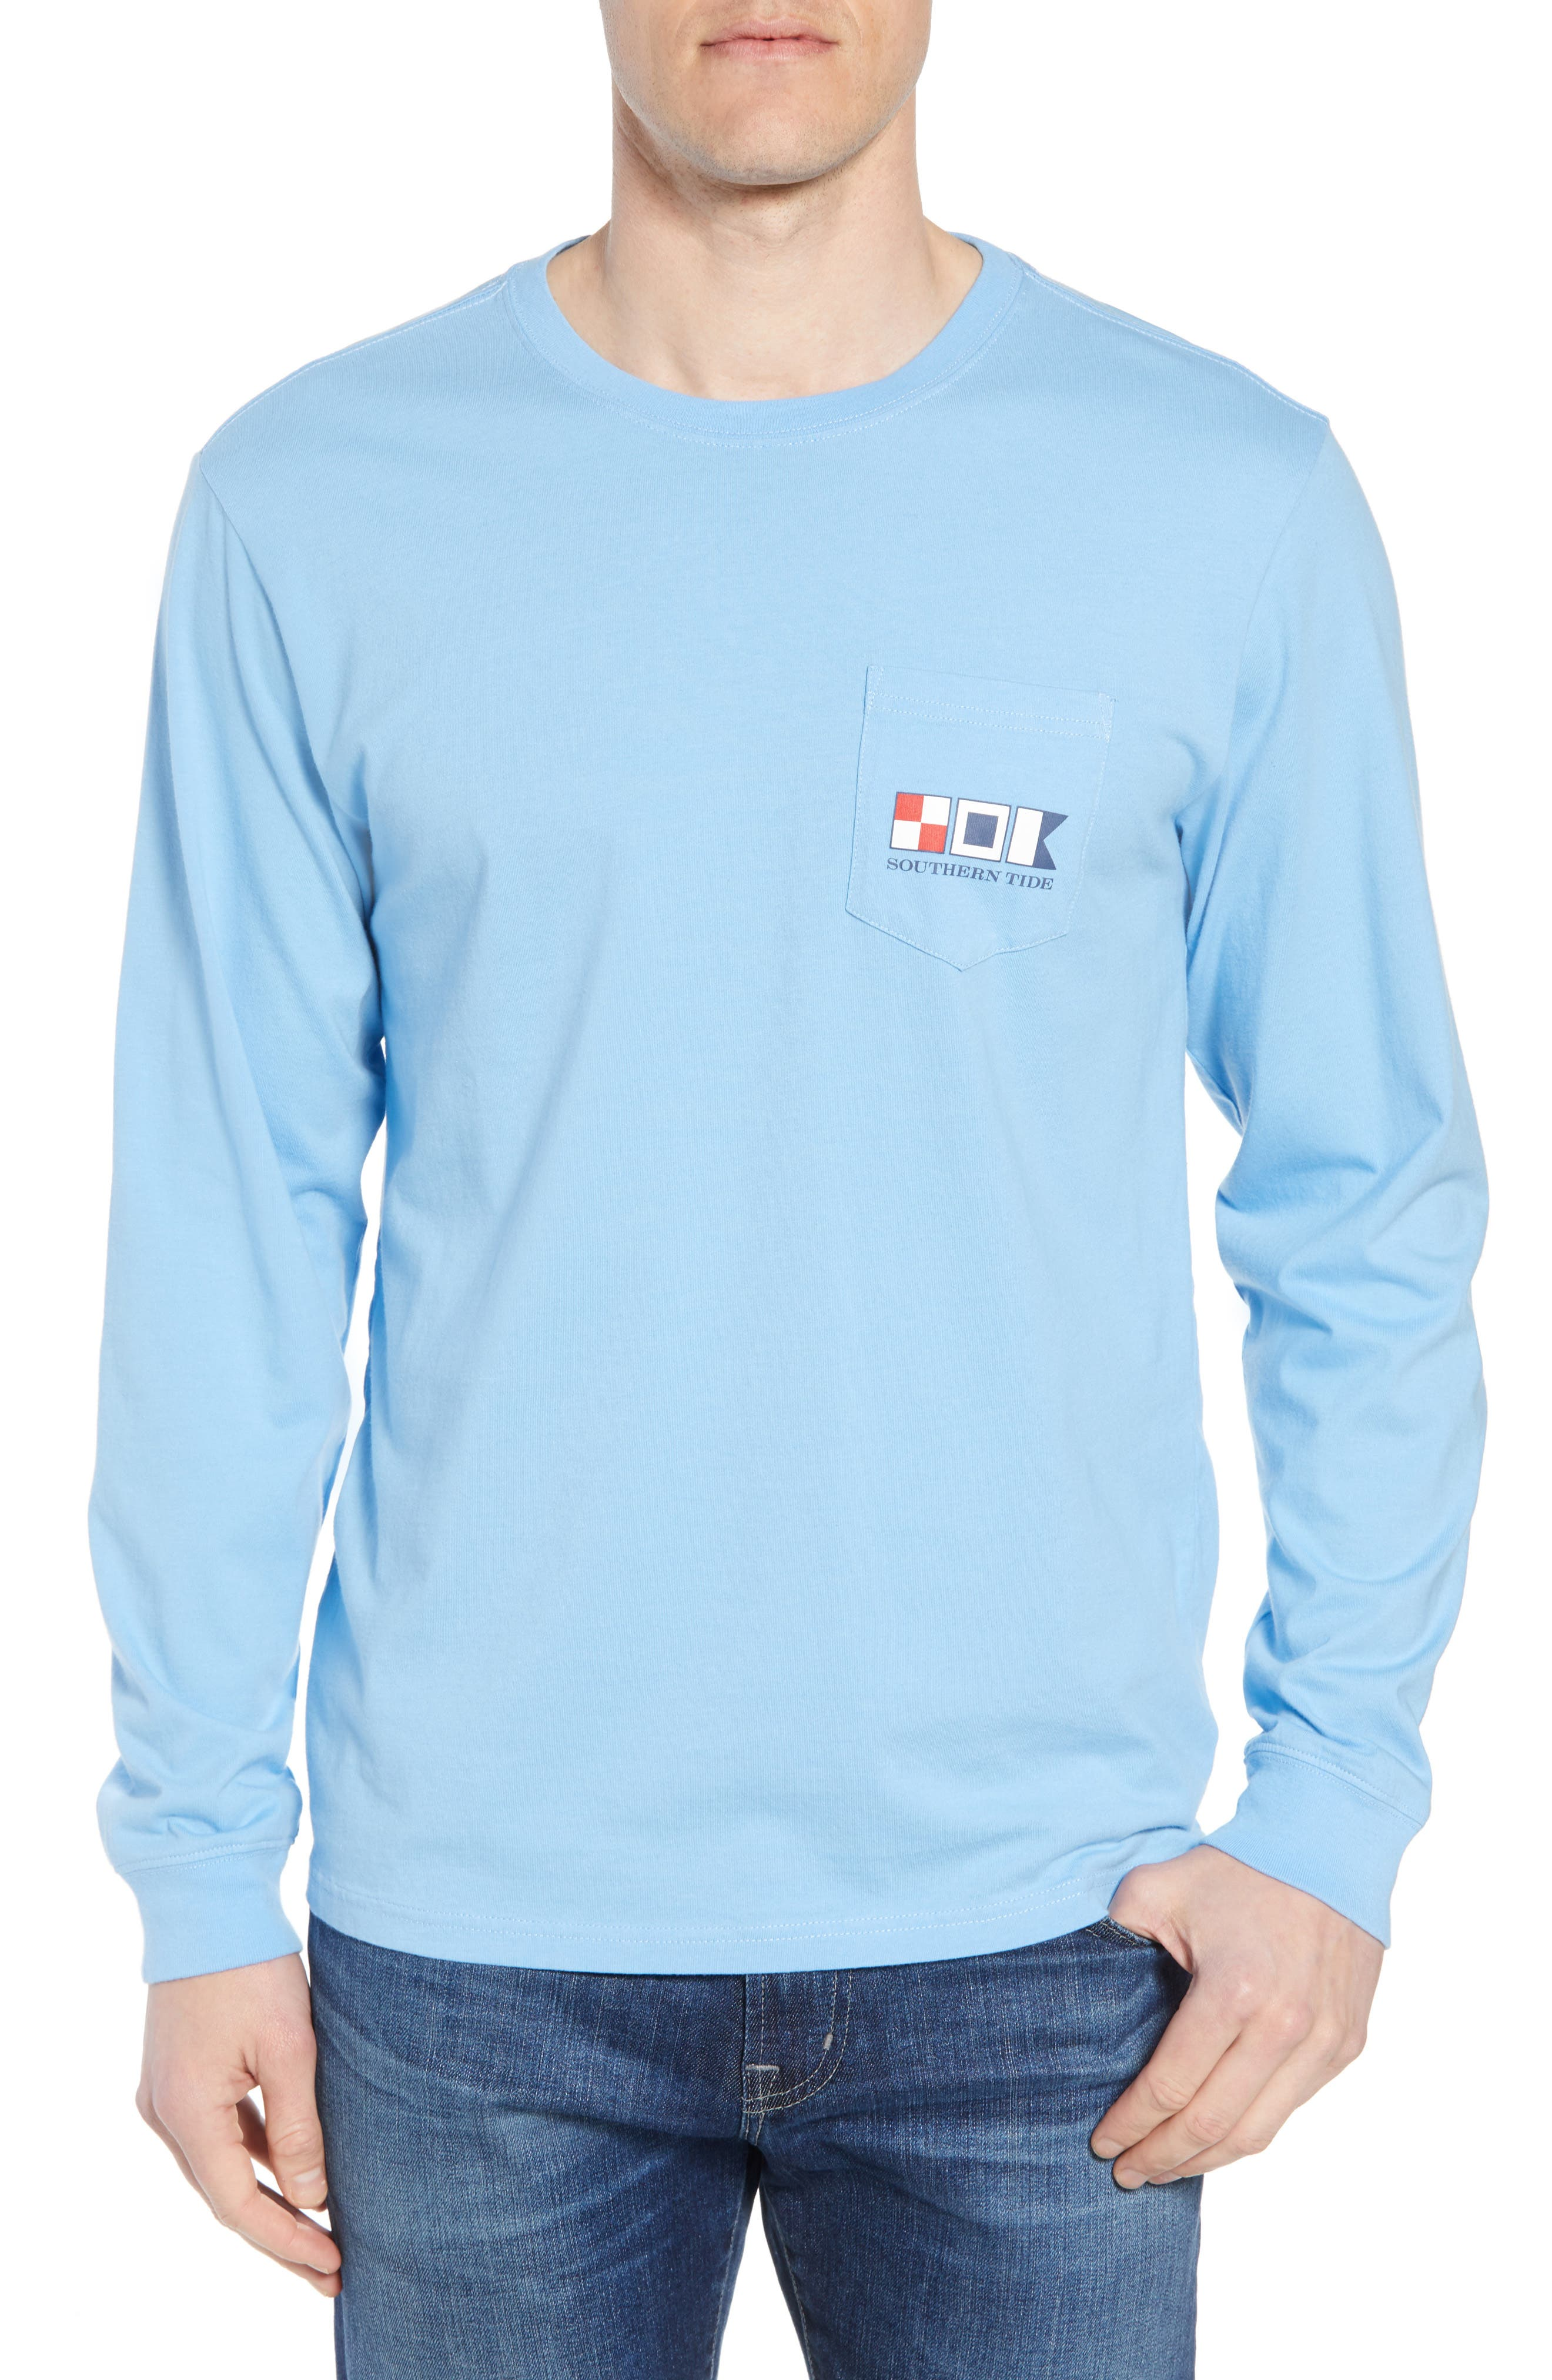 We the People Regular Fit Long Sleeve T-Shirt,                             Main thumbnail 1, color,                             392